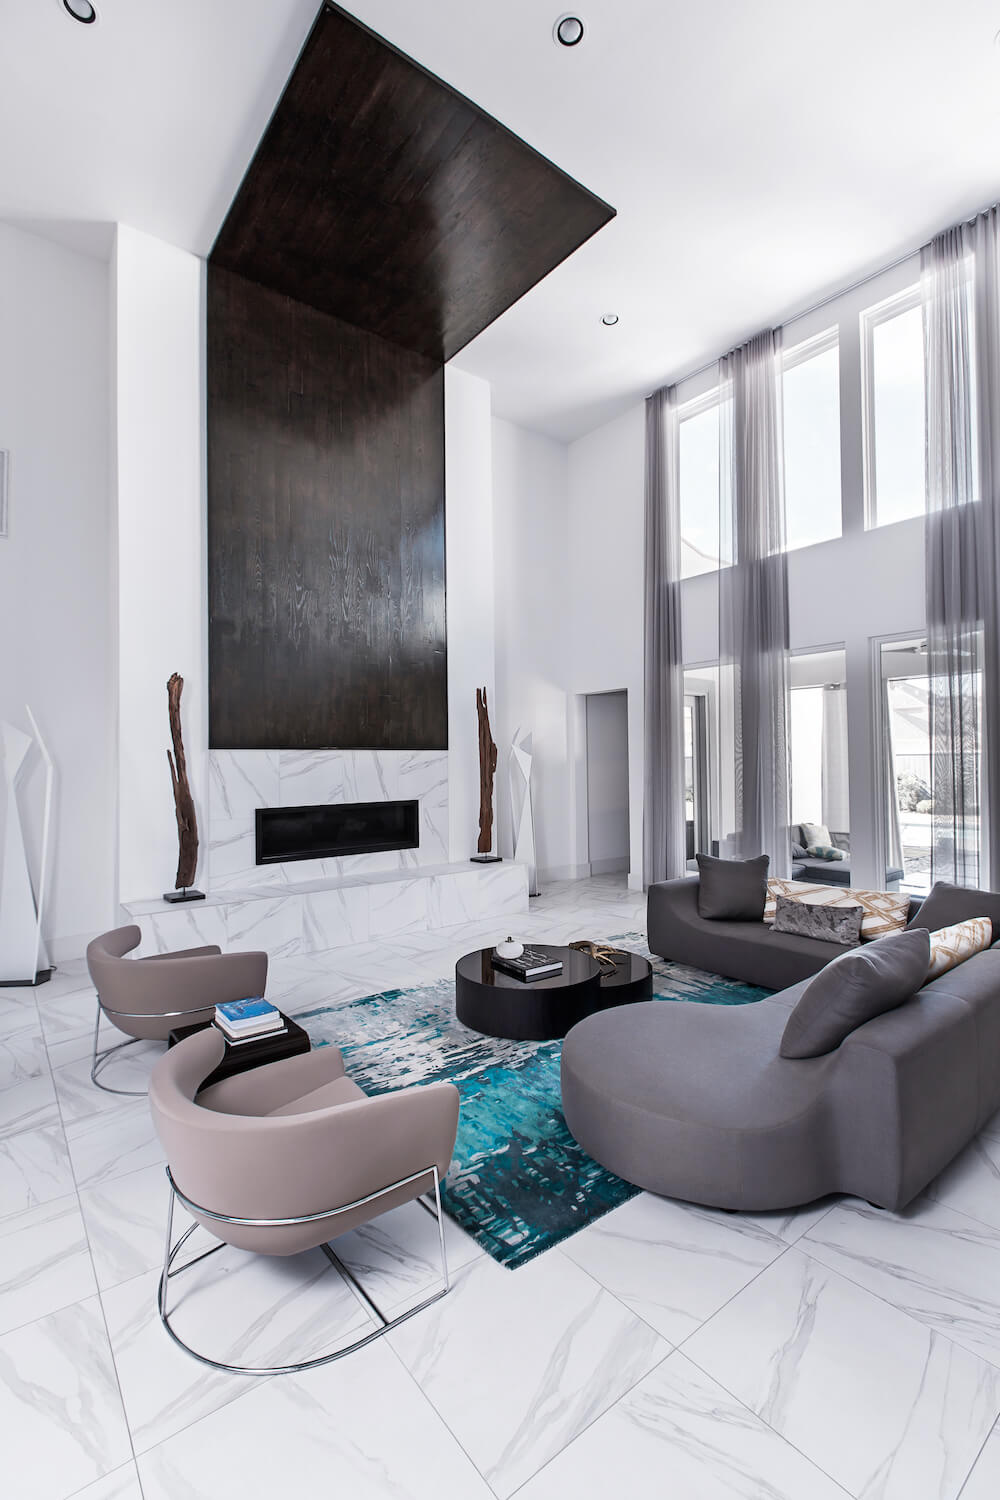 Couture modern residence contour interior design for Residential interior design